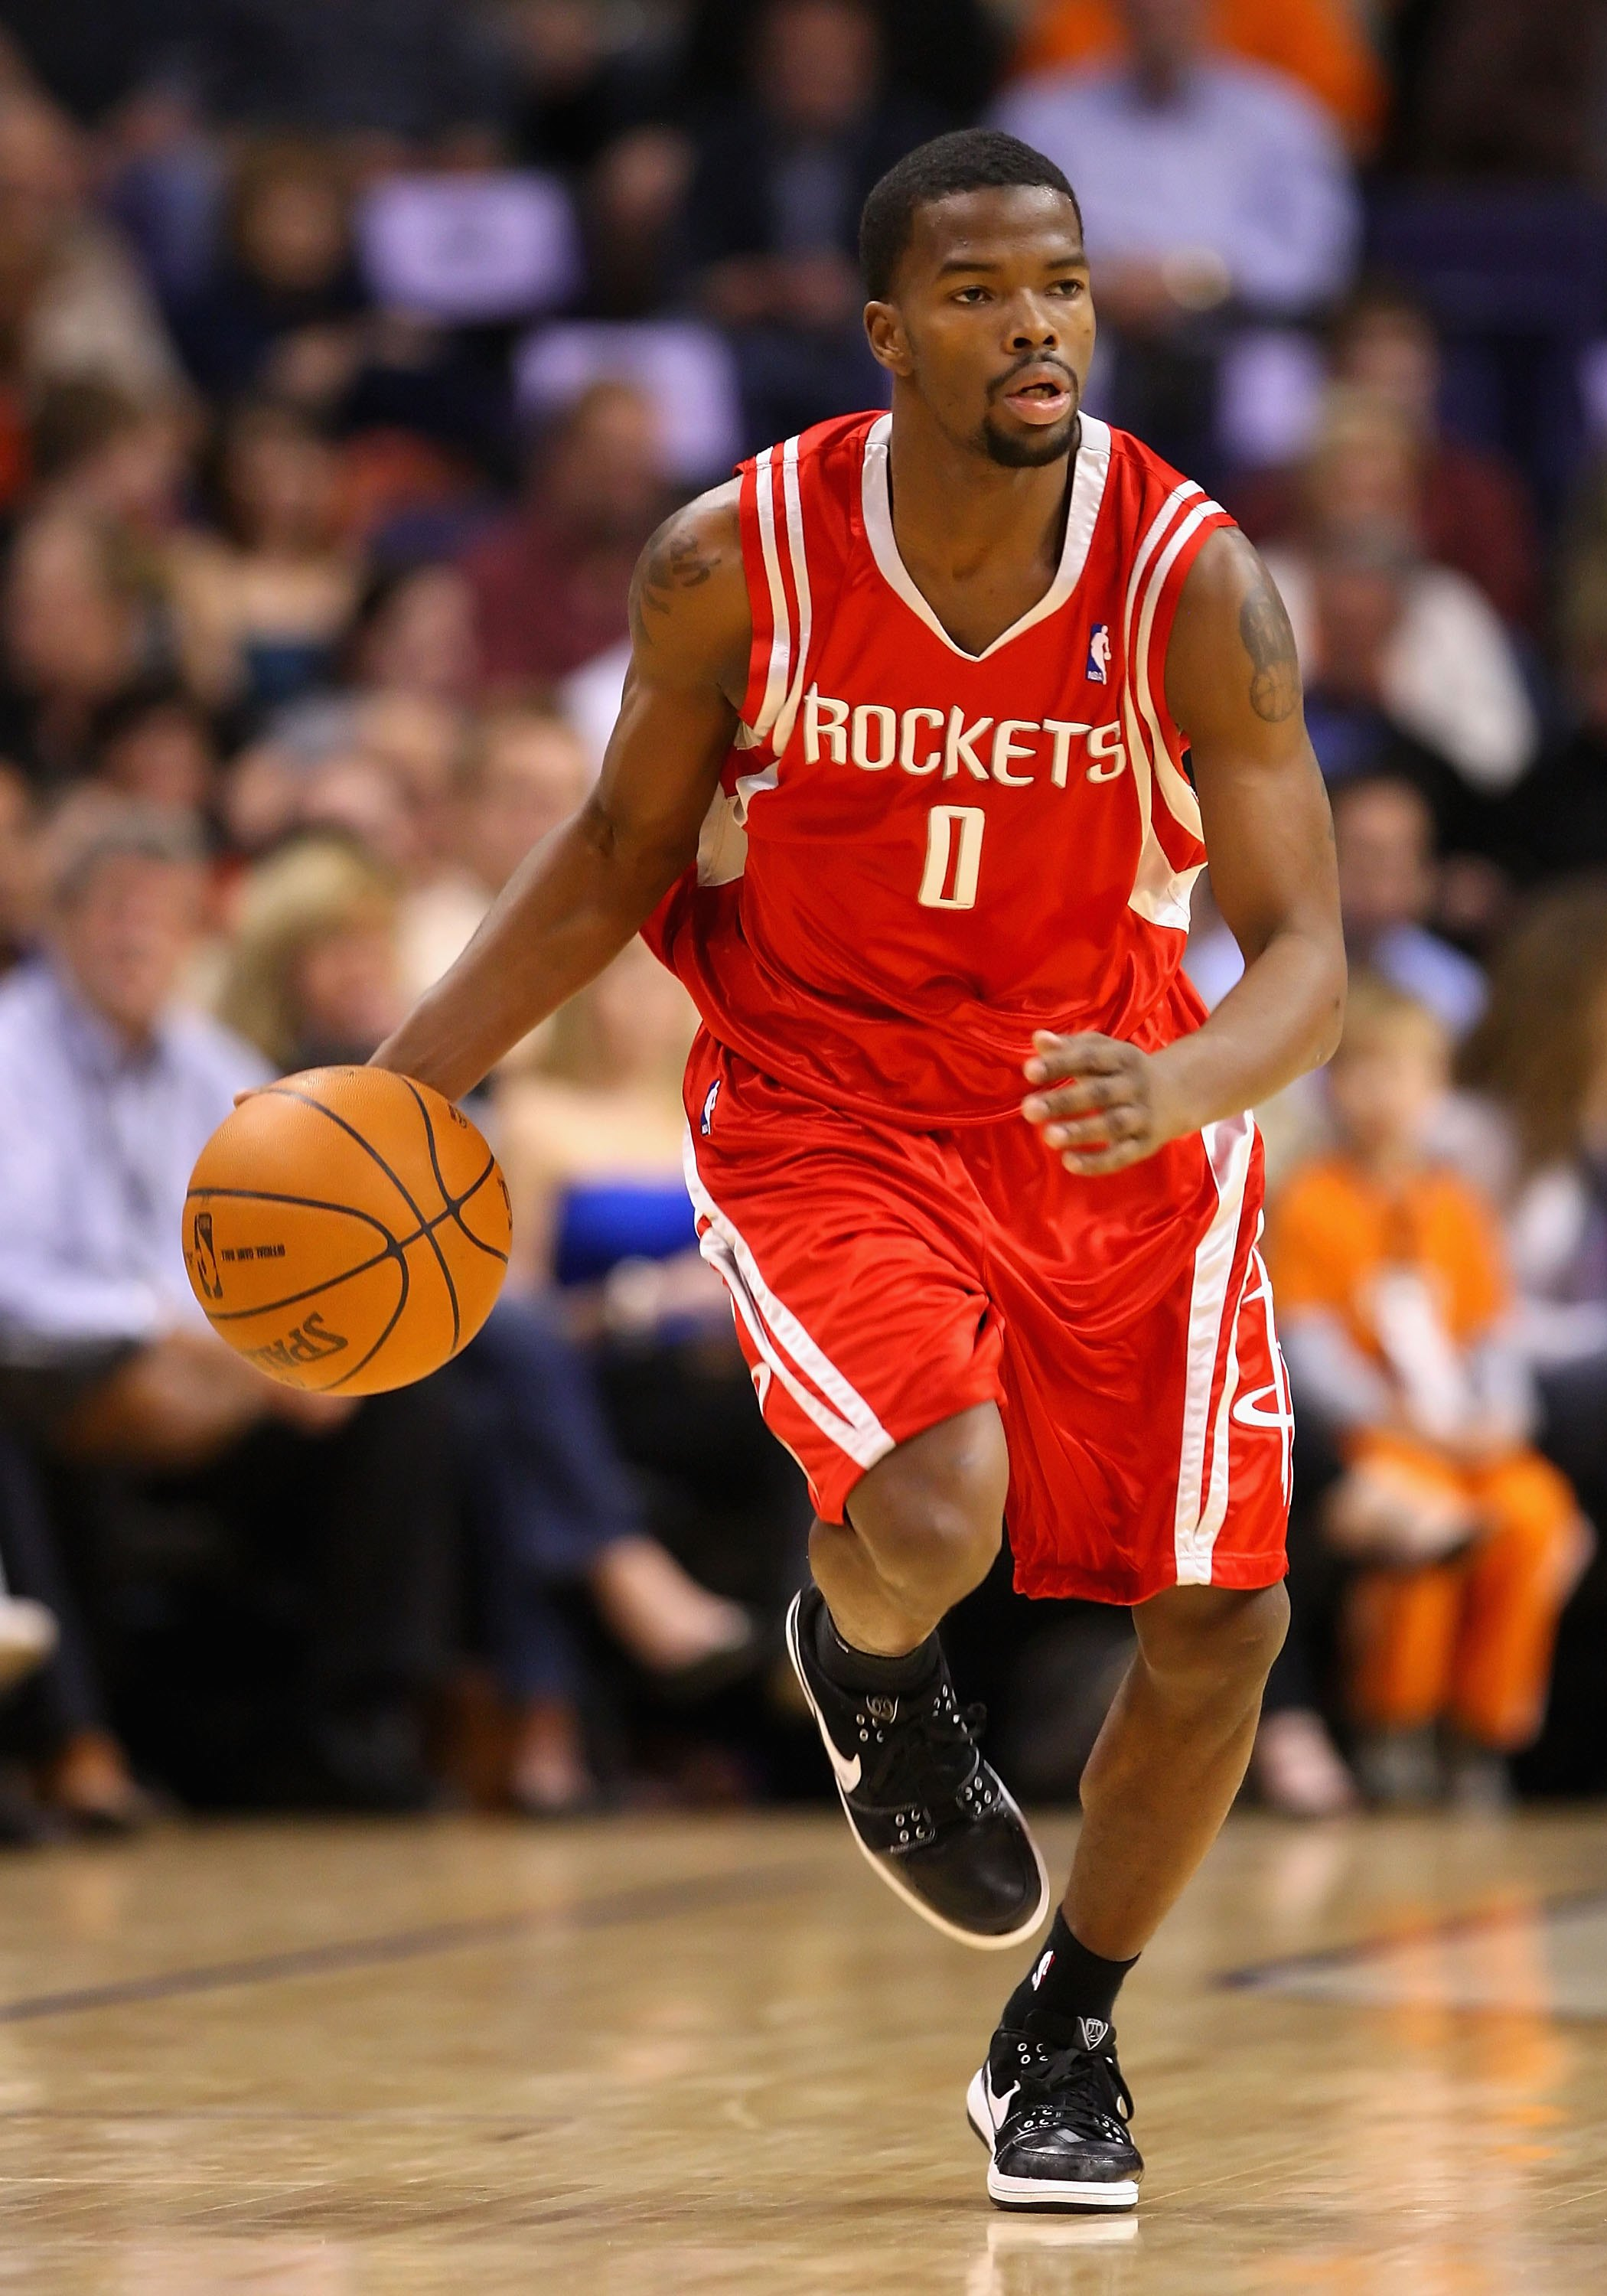 PHOENIX - JANUARY 06:  Aaron Brooks #0 of the Houston Rockets handles the ball during the NBA game against the Phoenix Suns at US Airways Center on January 6, 2010 in Phoenix, Arizona. The Suns defeated the Rockets 118-110.  NOTE TO USER: User expressly a